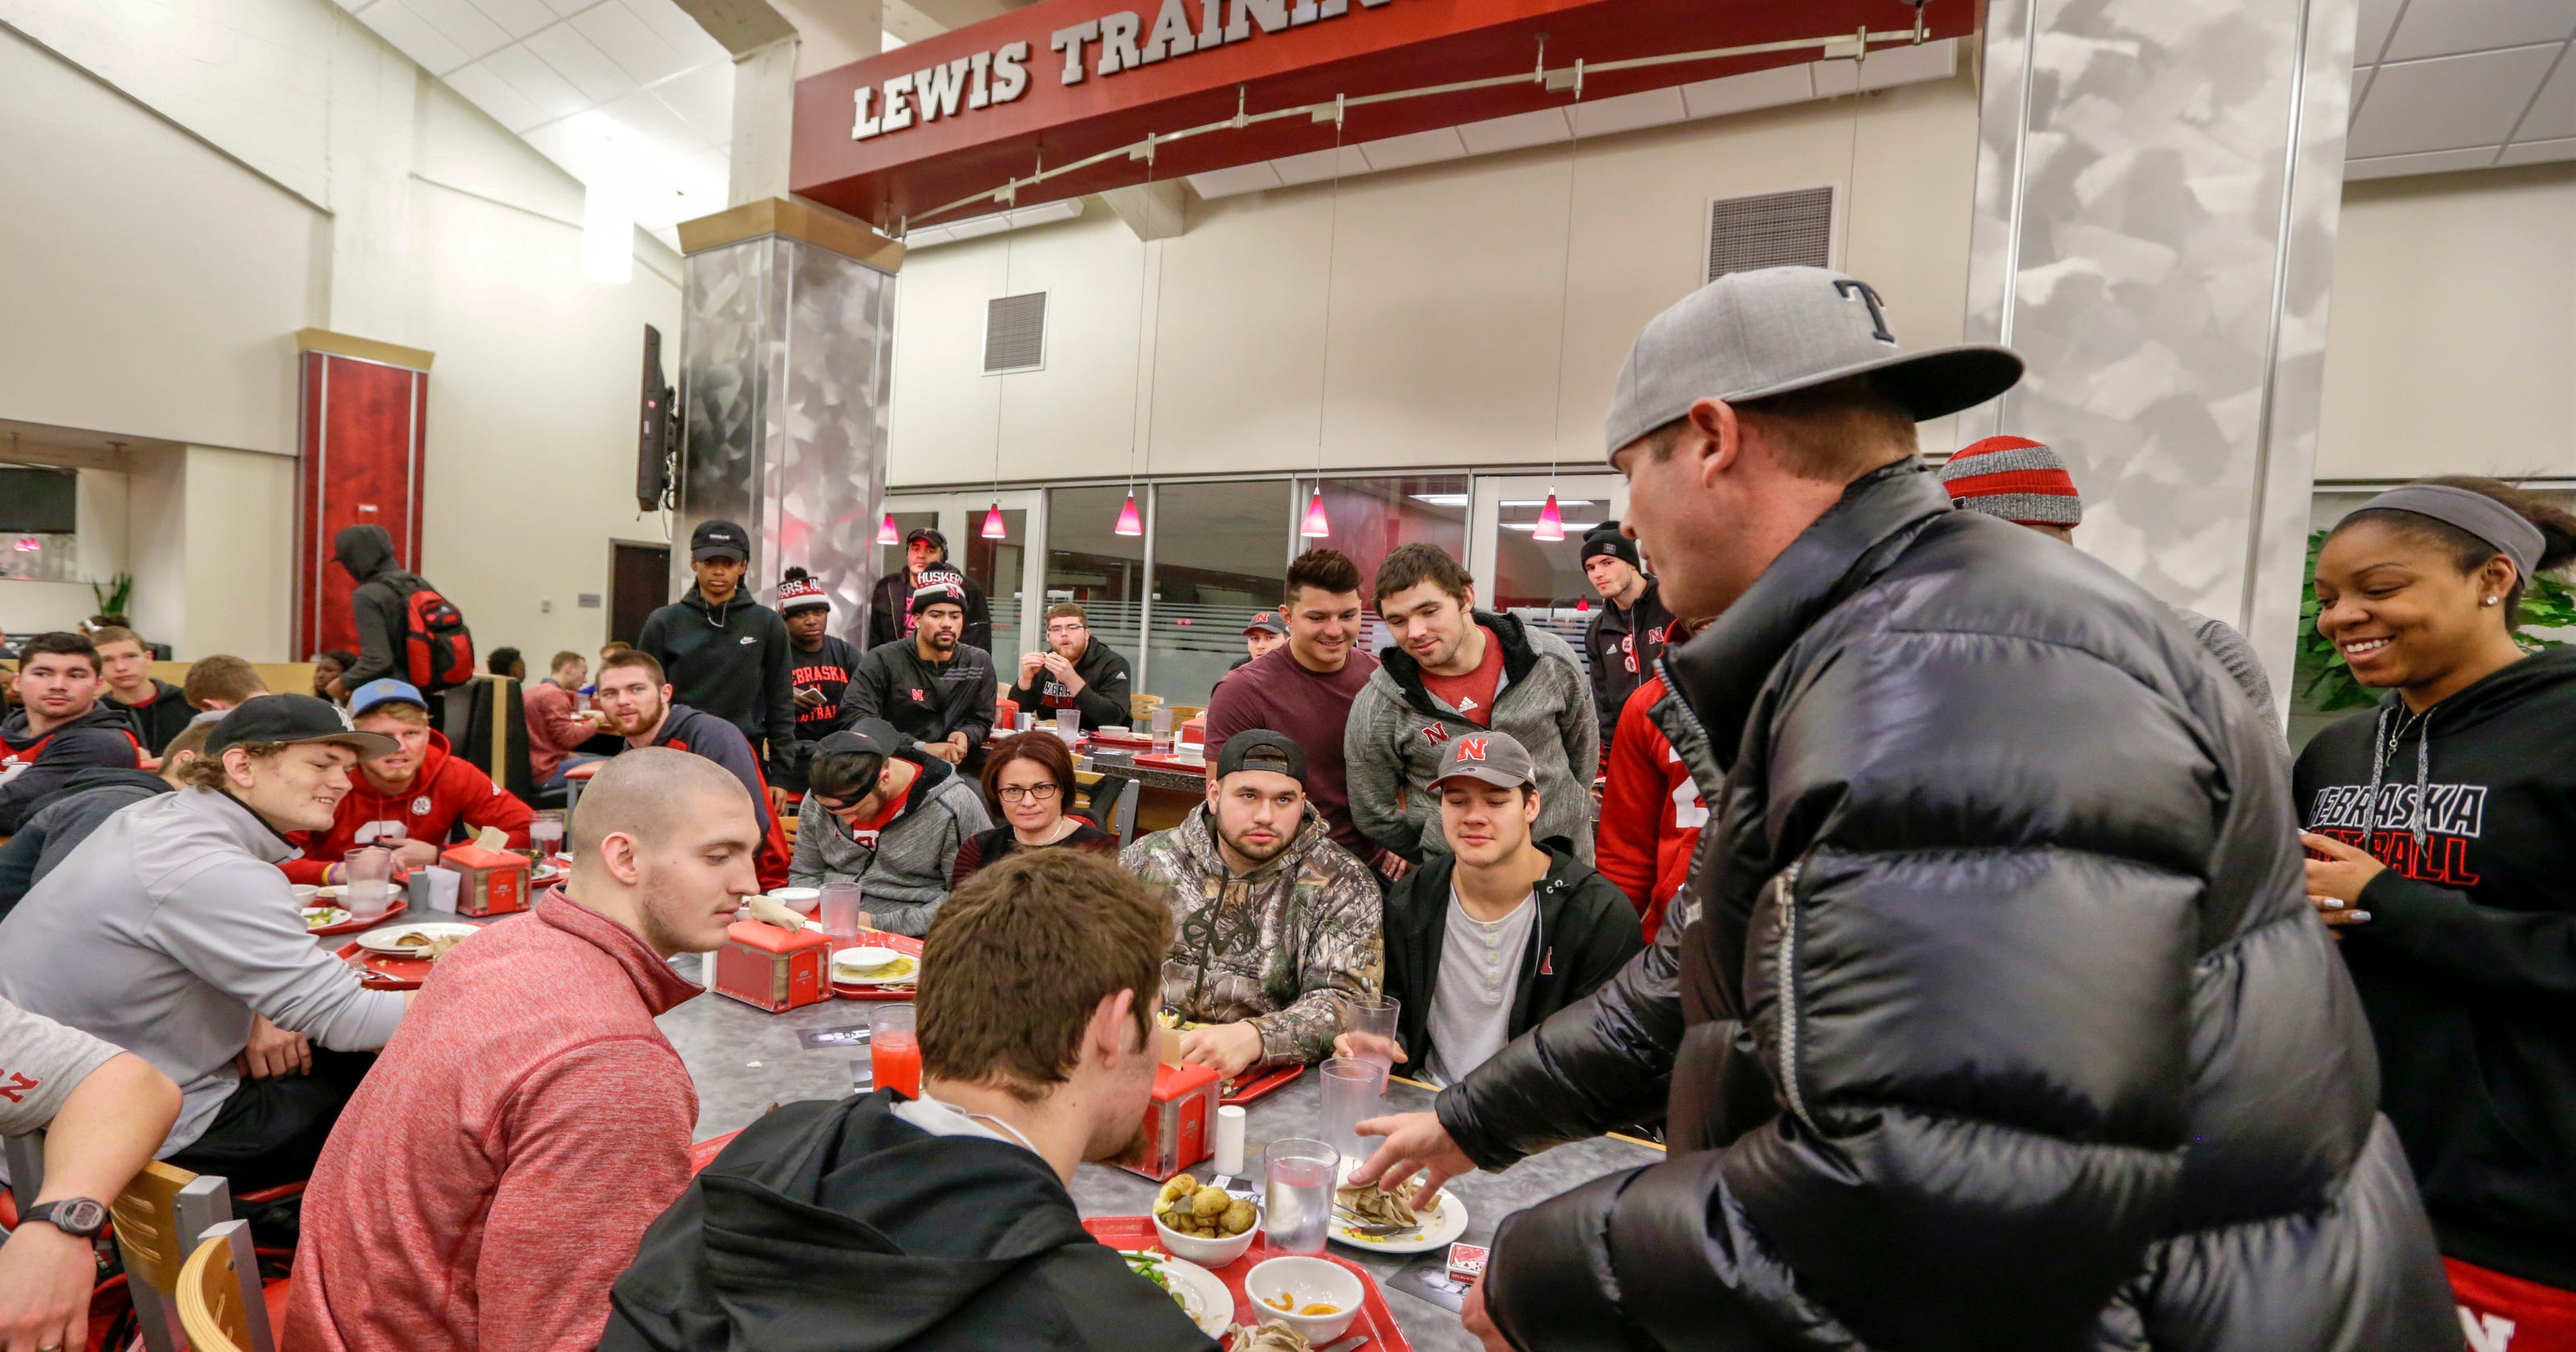 Fine Dining Or Fast Food Eatings Better In Power Five - Unl training table